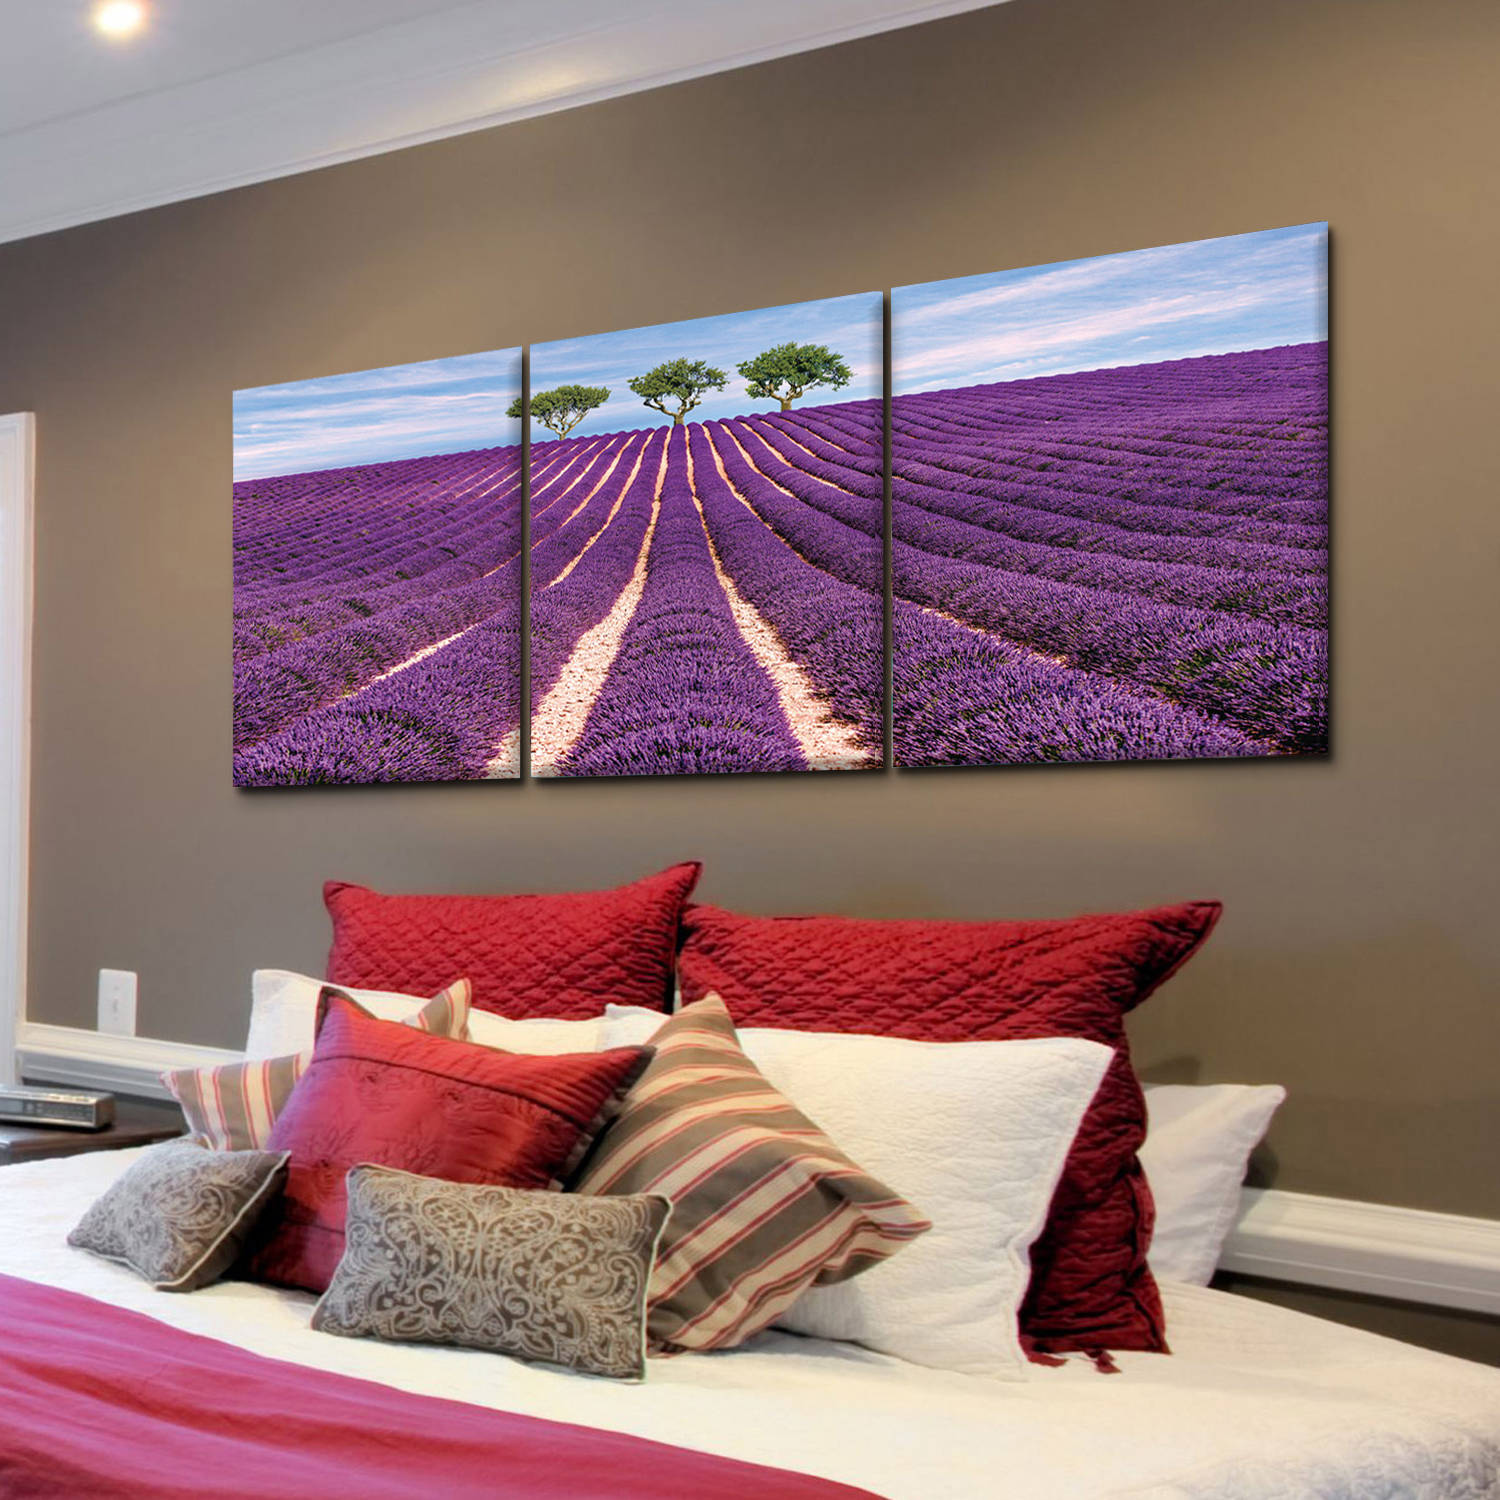 """Furinno SENIC Lavender Field 3-Panel Canvas on Wood Frame, 60"""" x 20"""""""